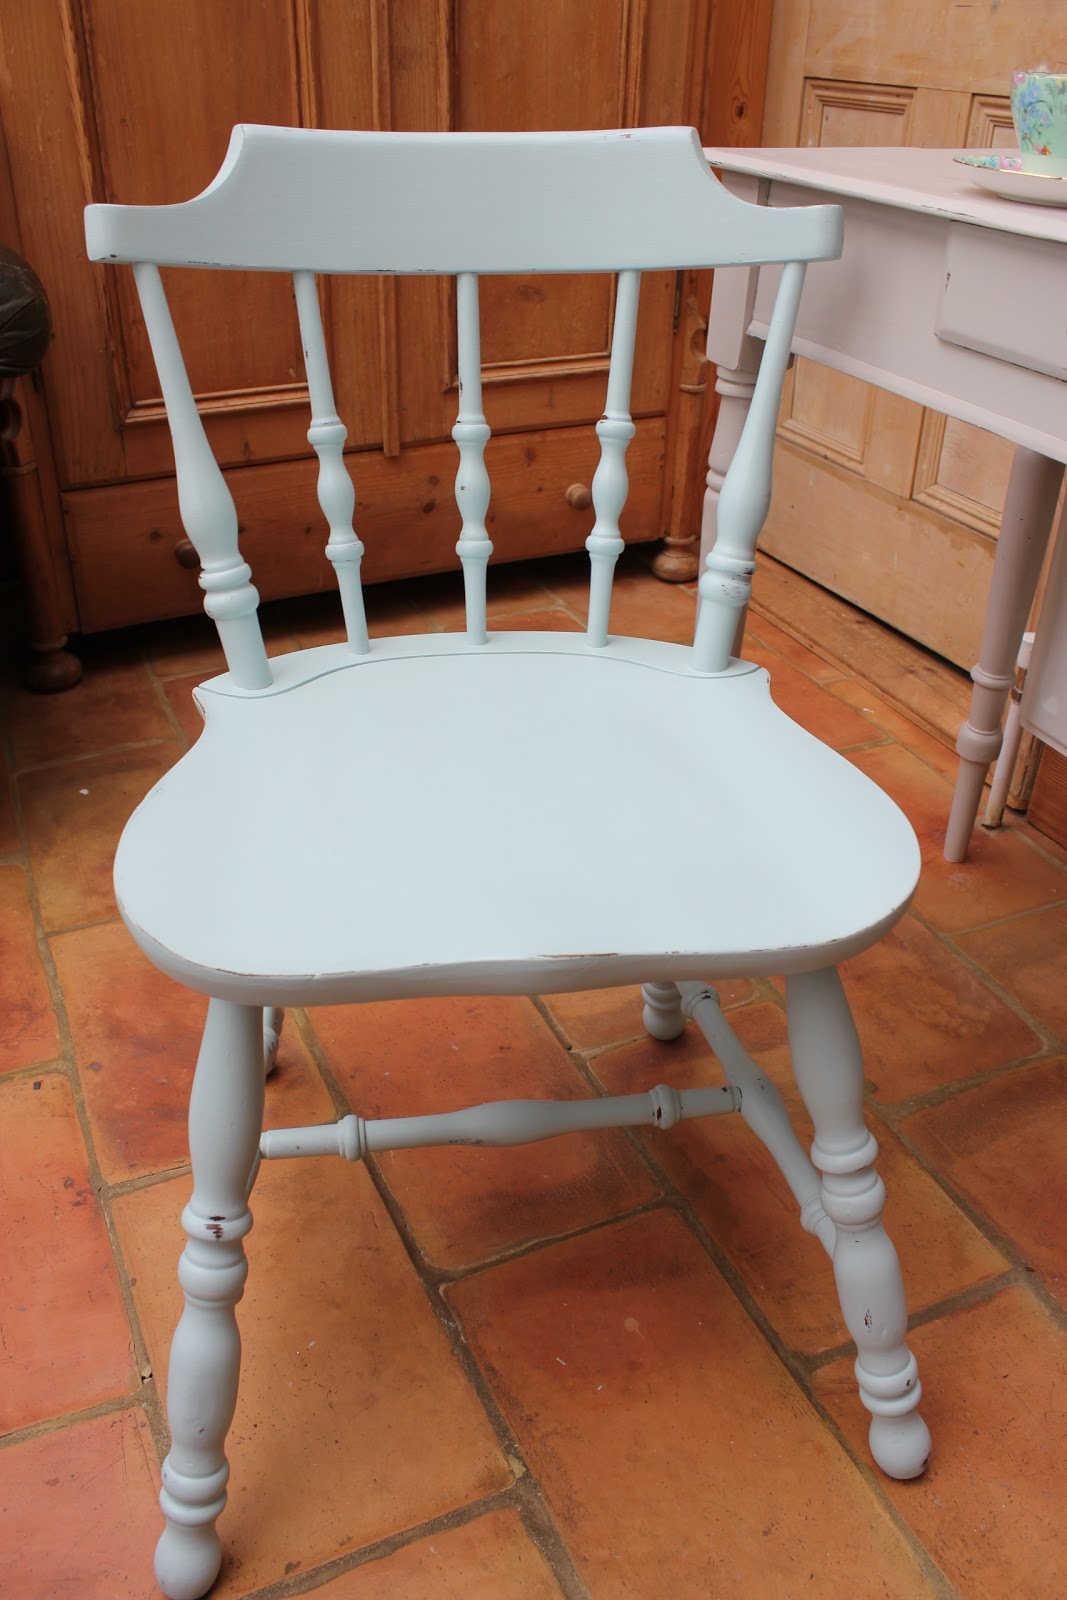 Alice's Room: Painted kitchen chair - available